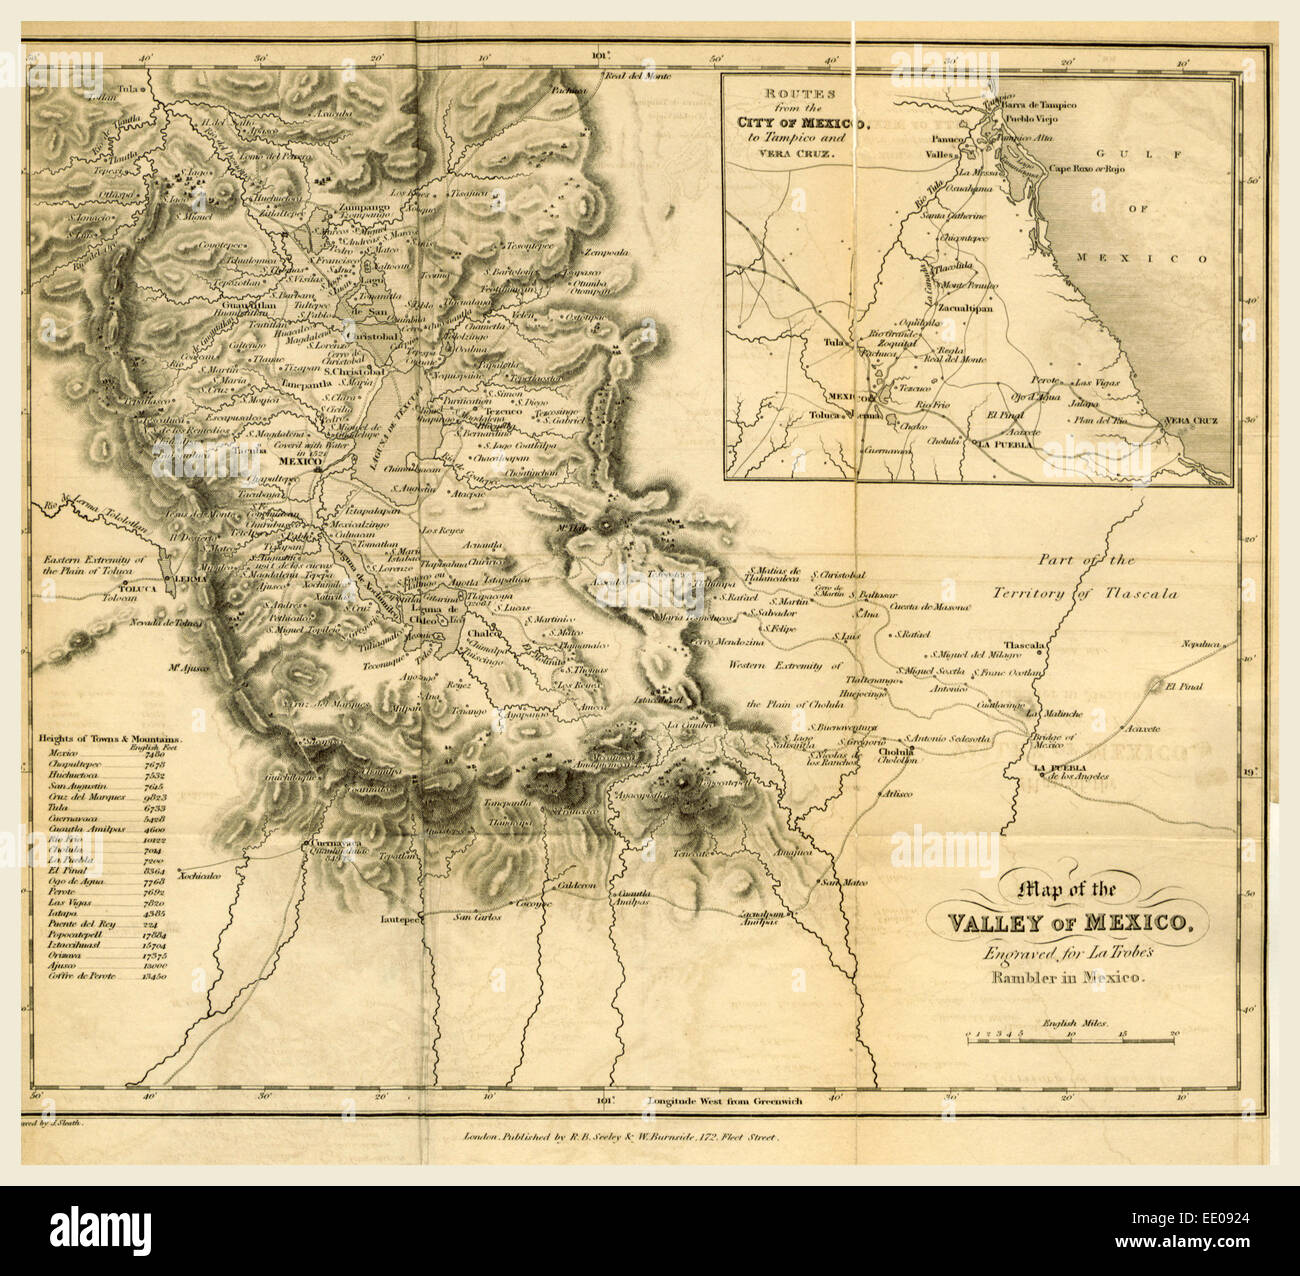 Map of the valley of Mexico, 1834, 19th century engraving - Stock Image